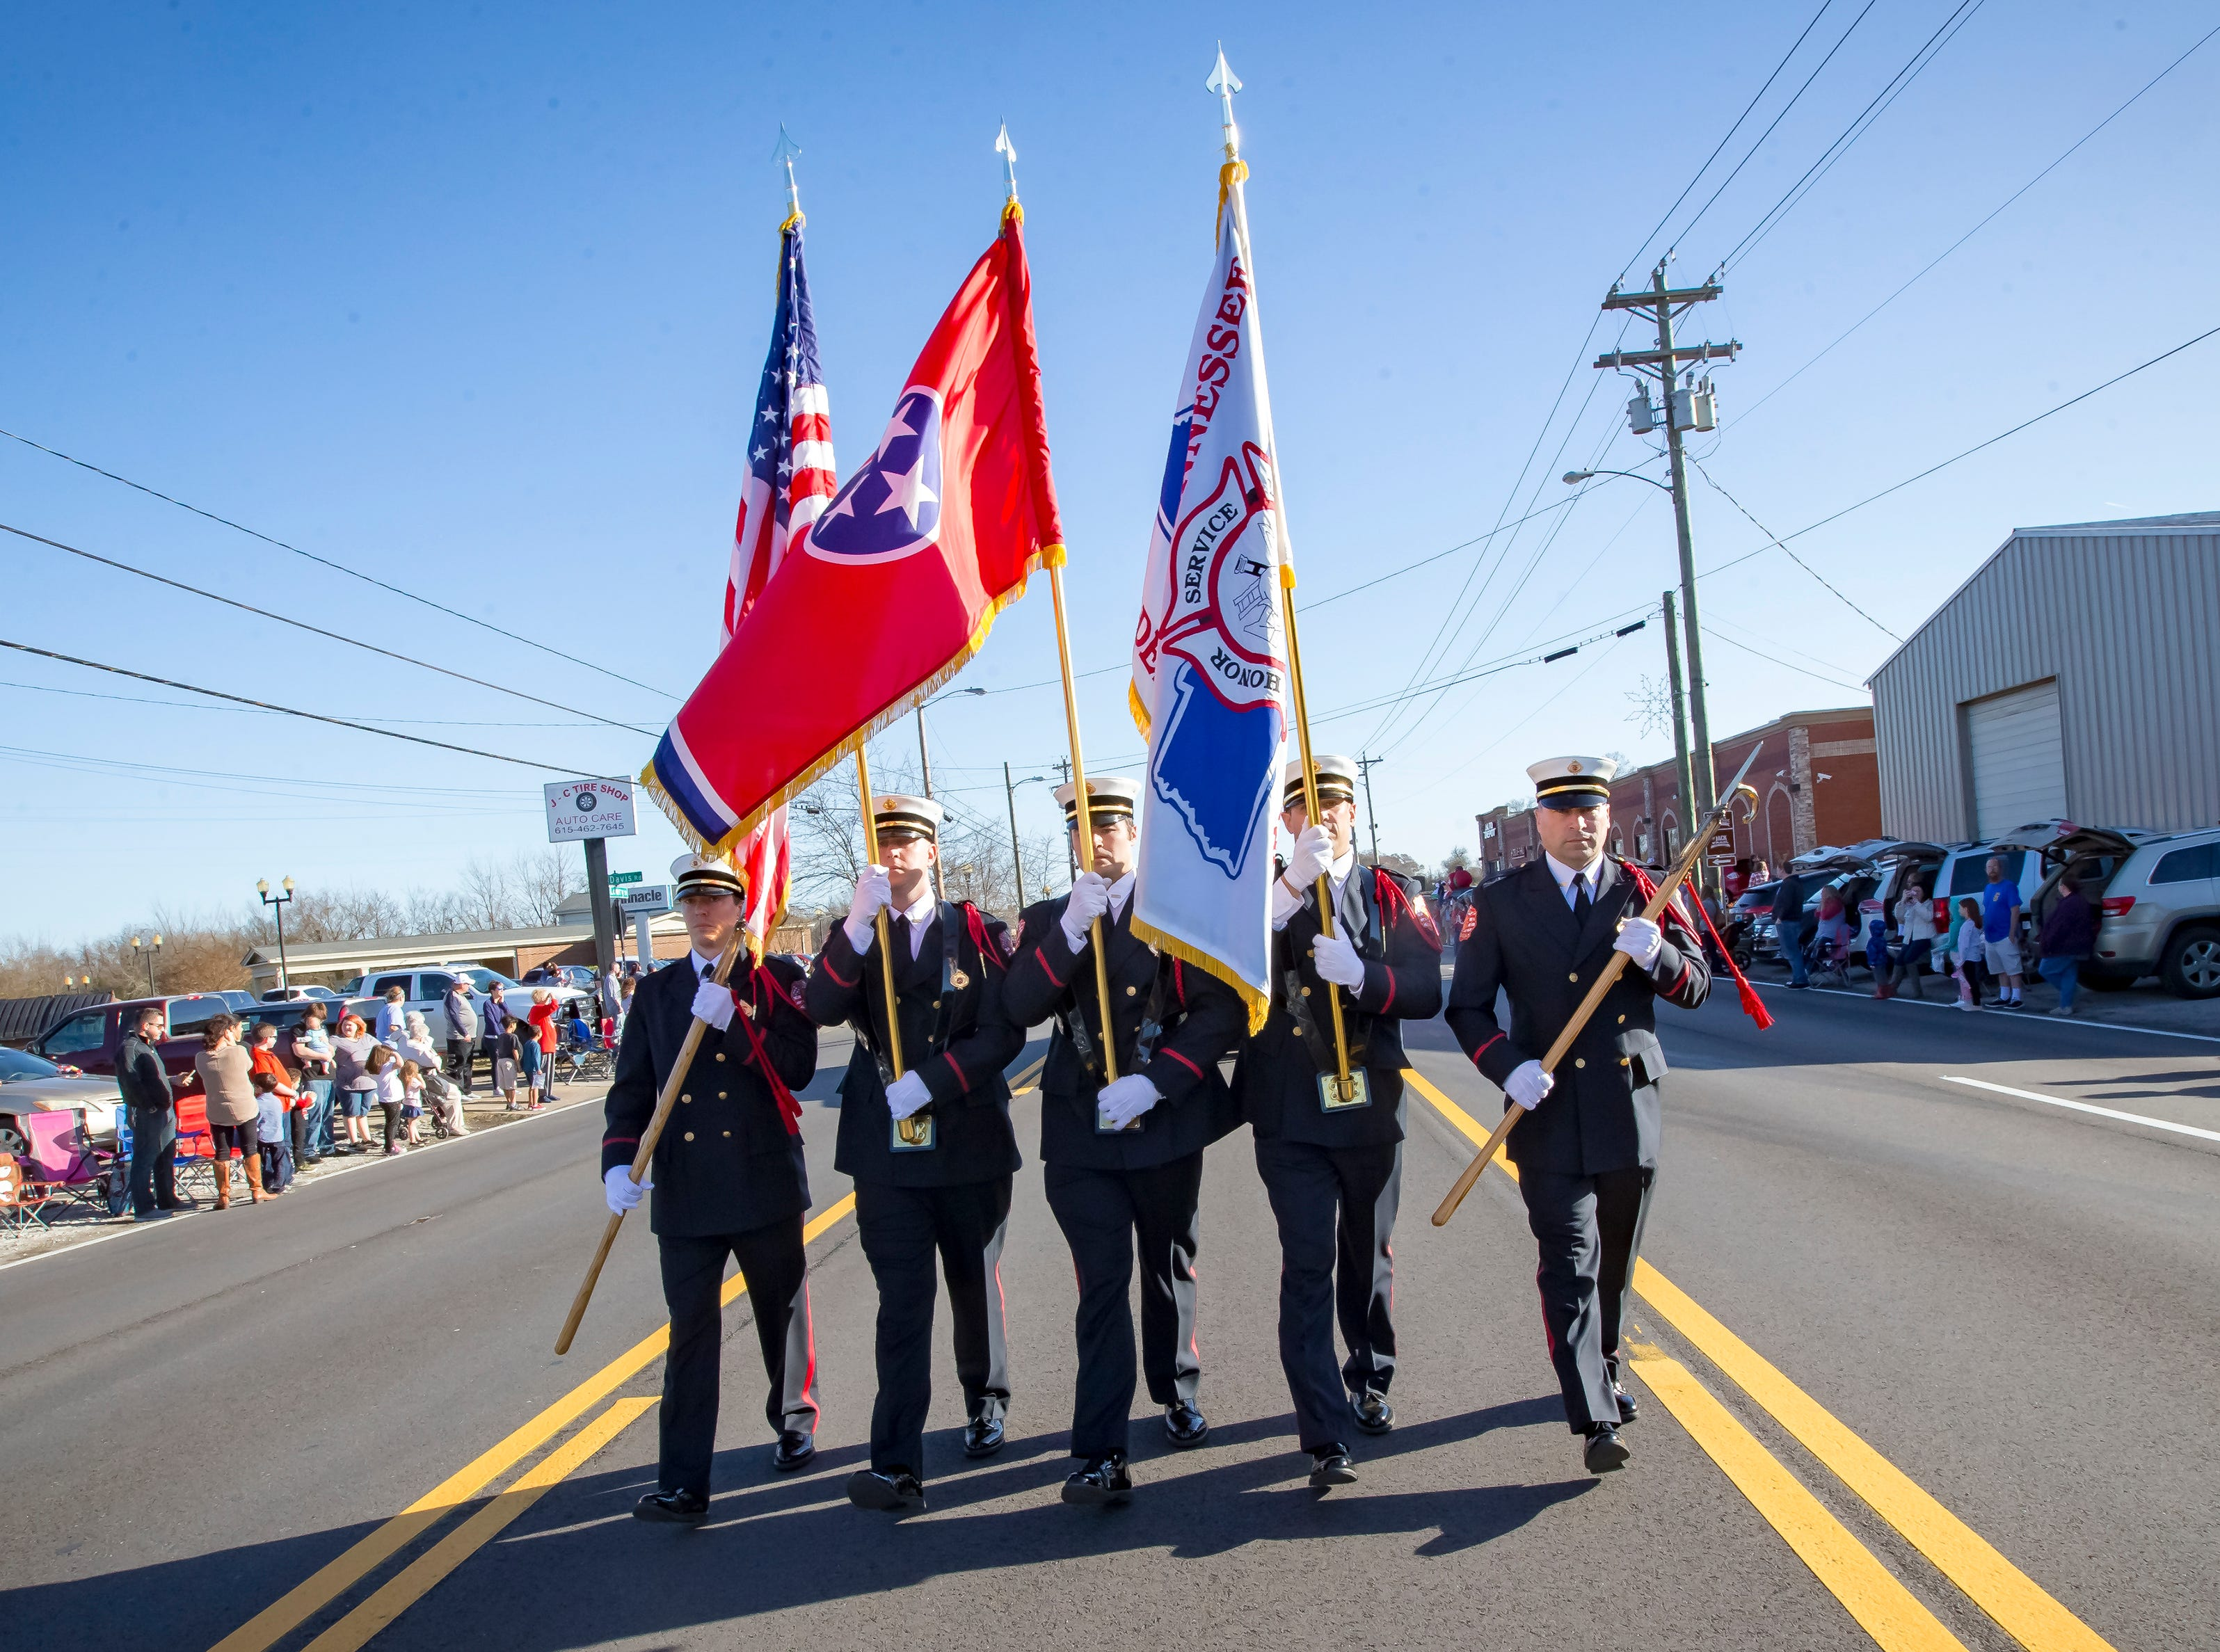 The Smyrna Fire Department Honor Guard leads the Smyrna Christmas parade.